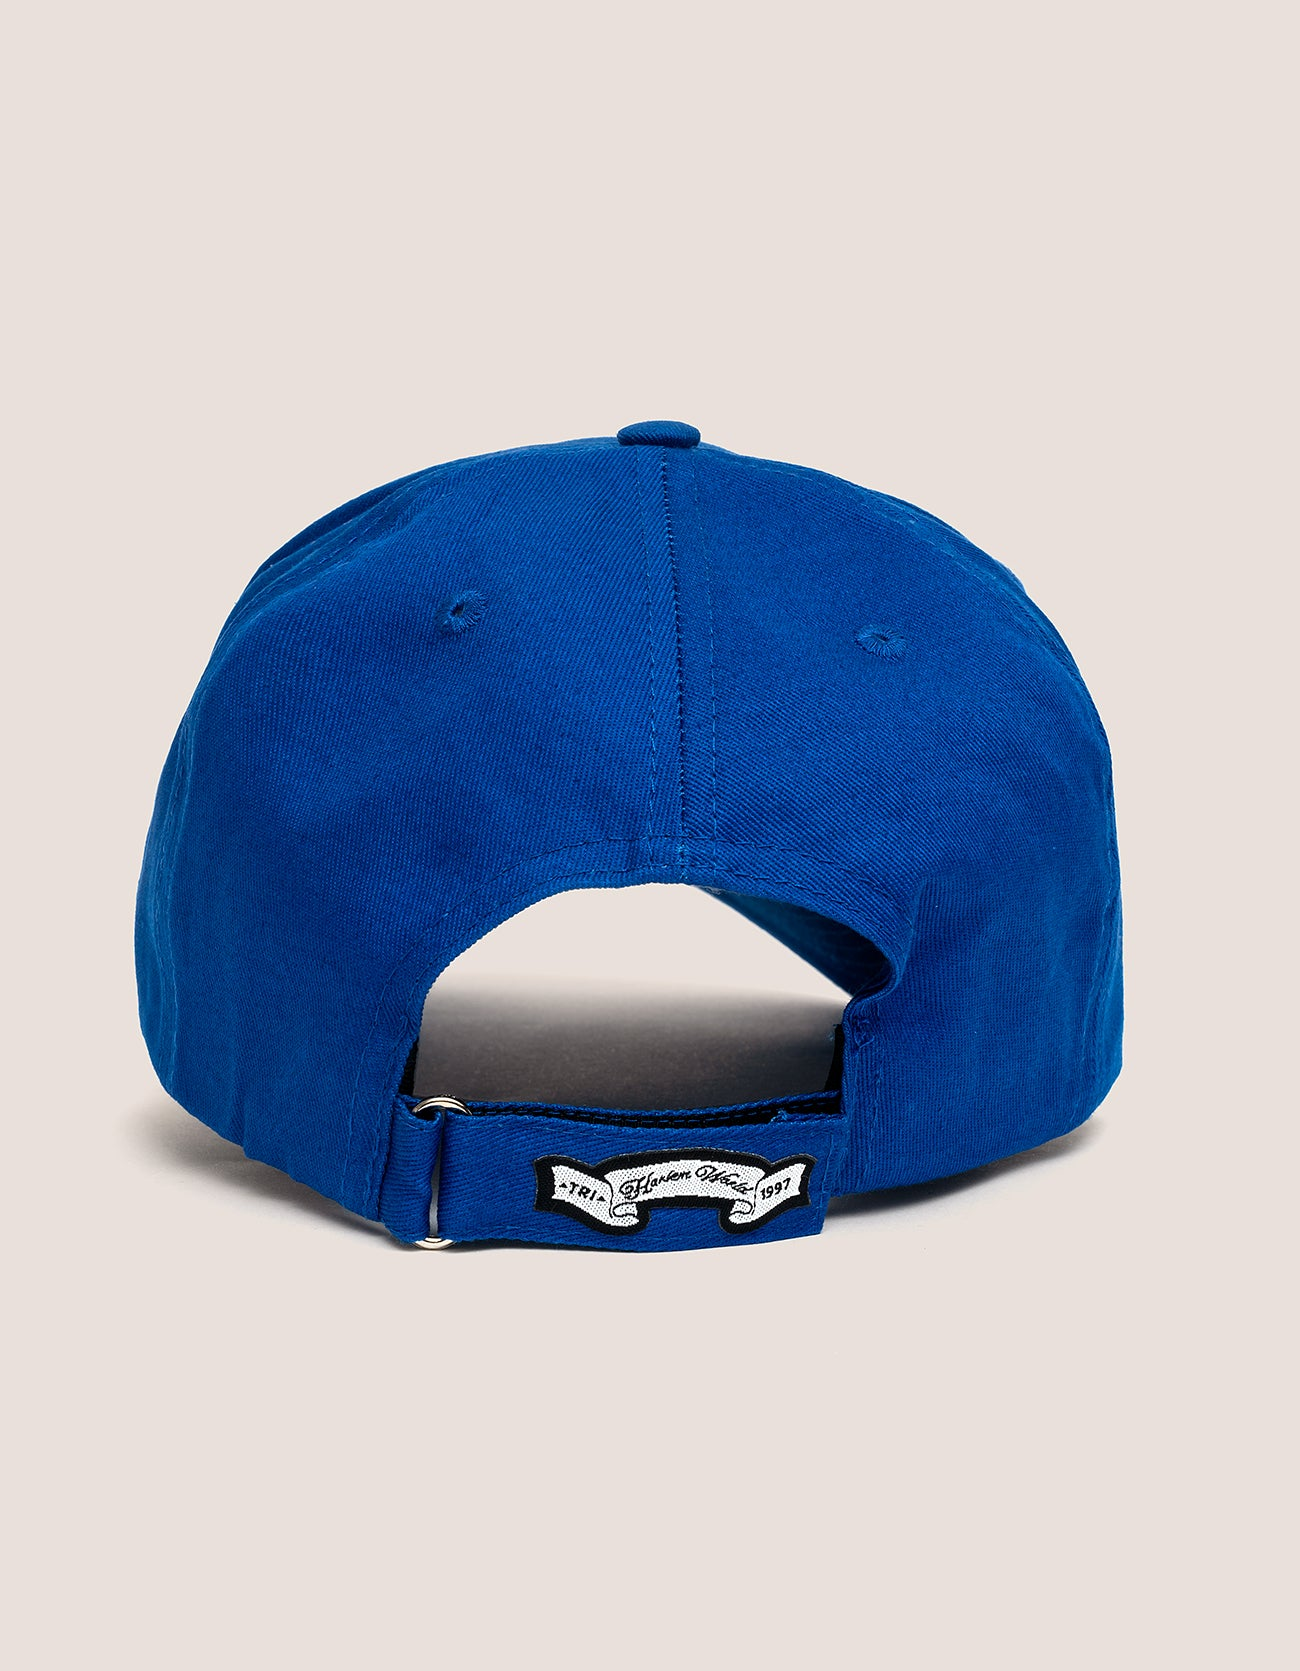 DIPSET COUTURE COTTON ROCKSTAR HAT BLUE